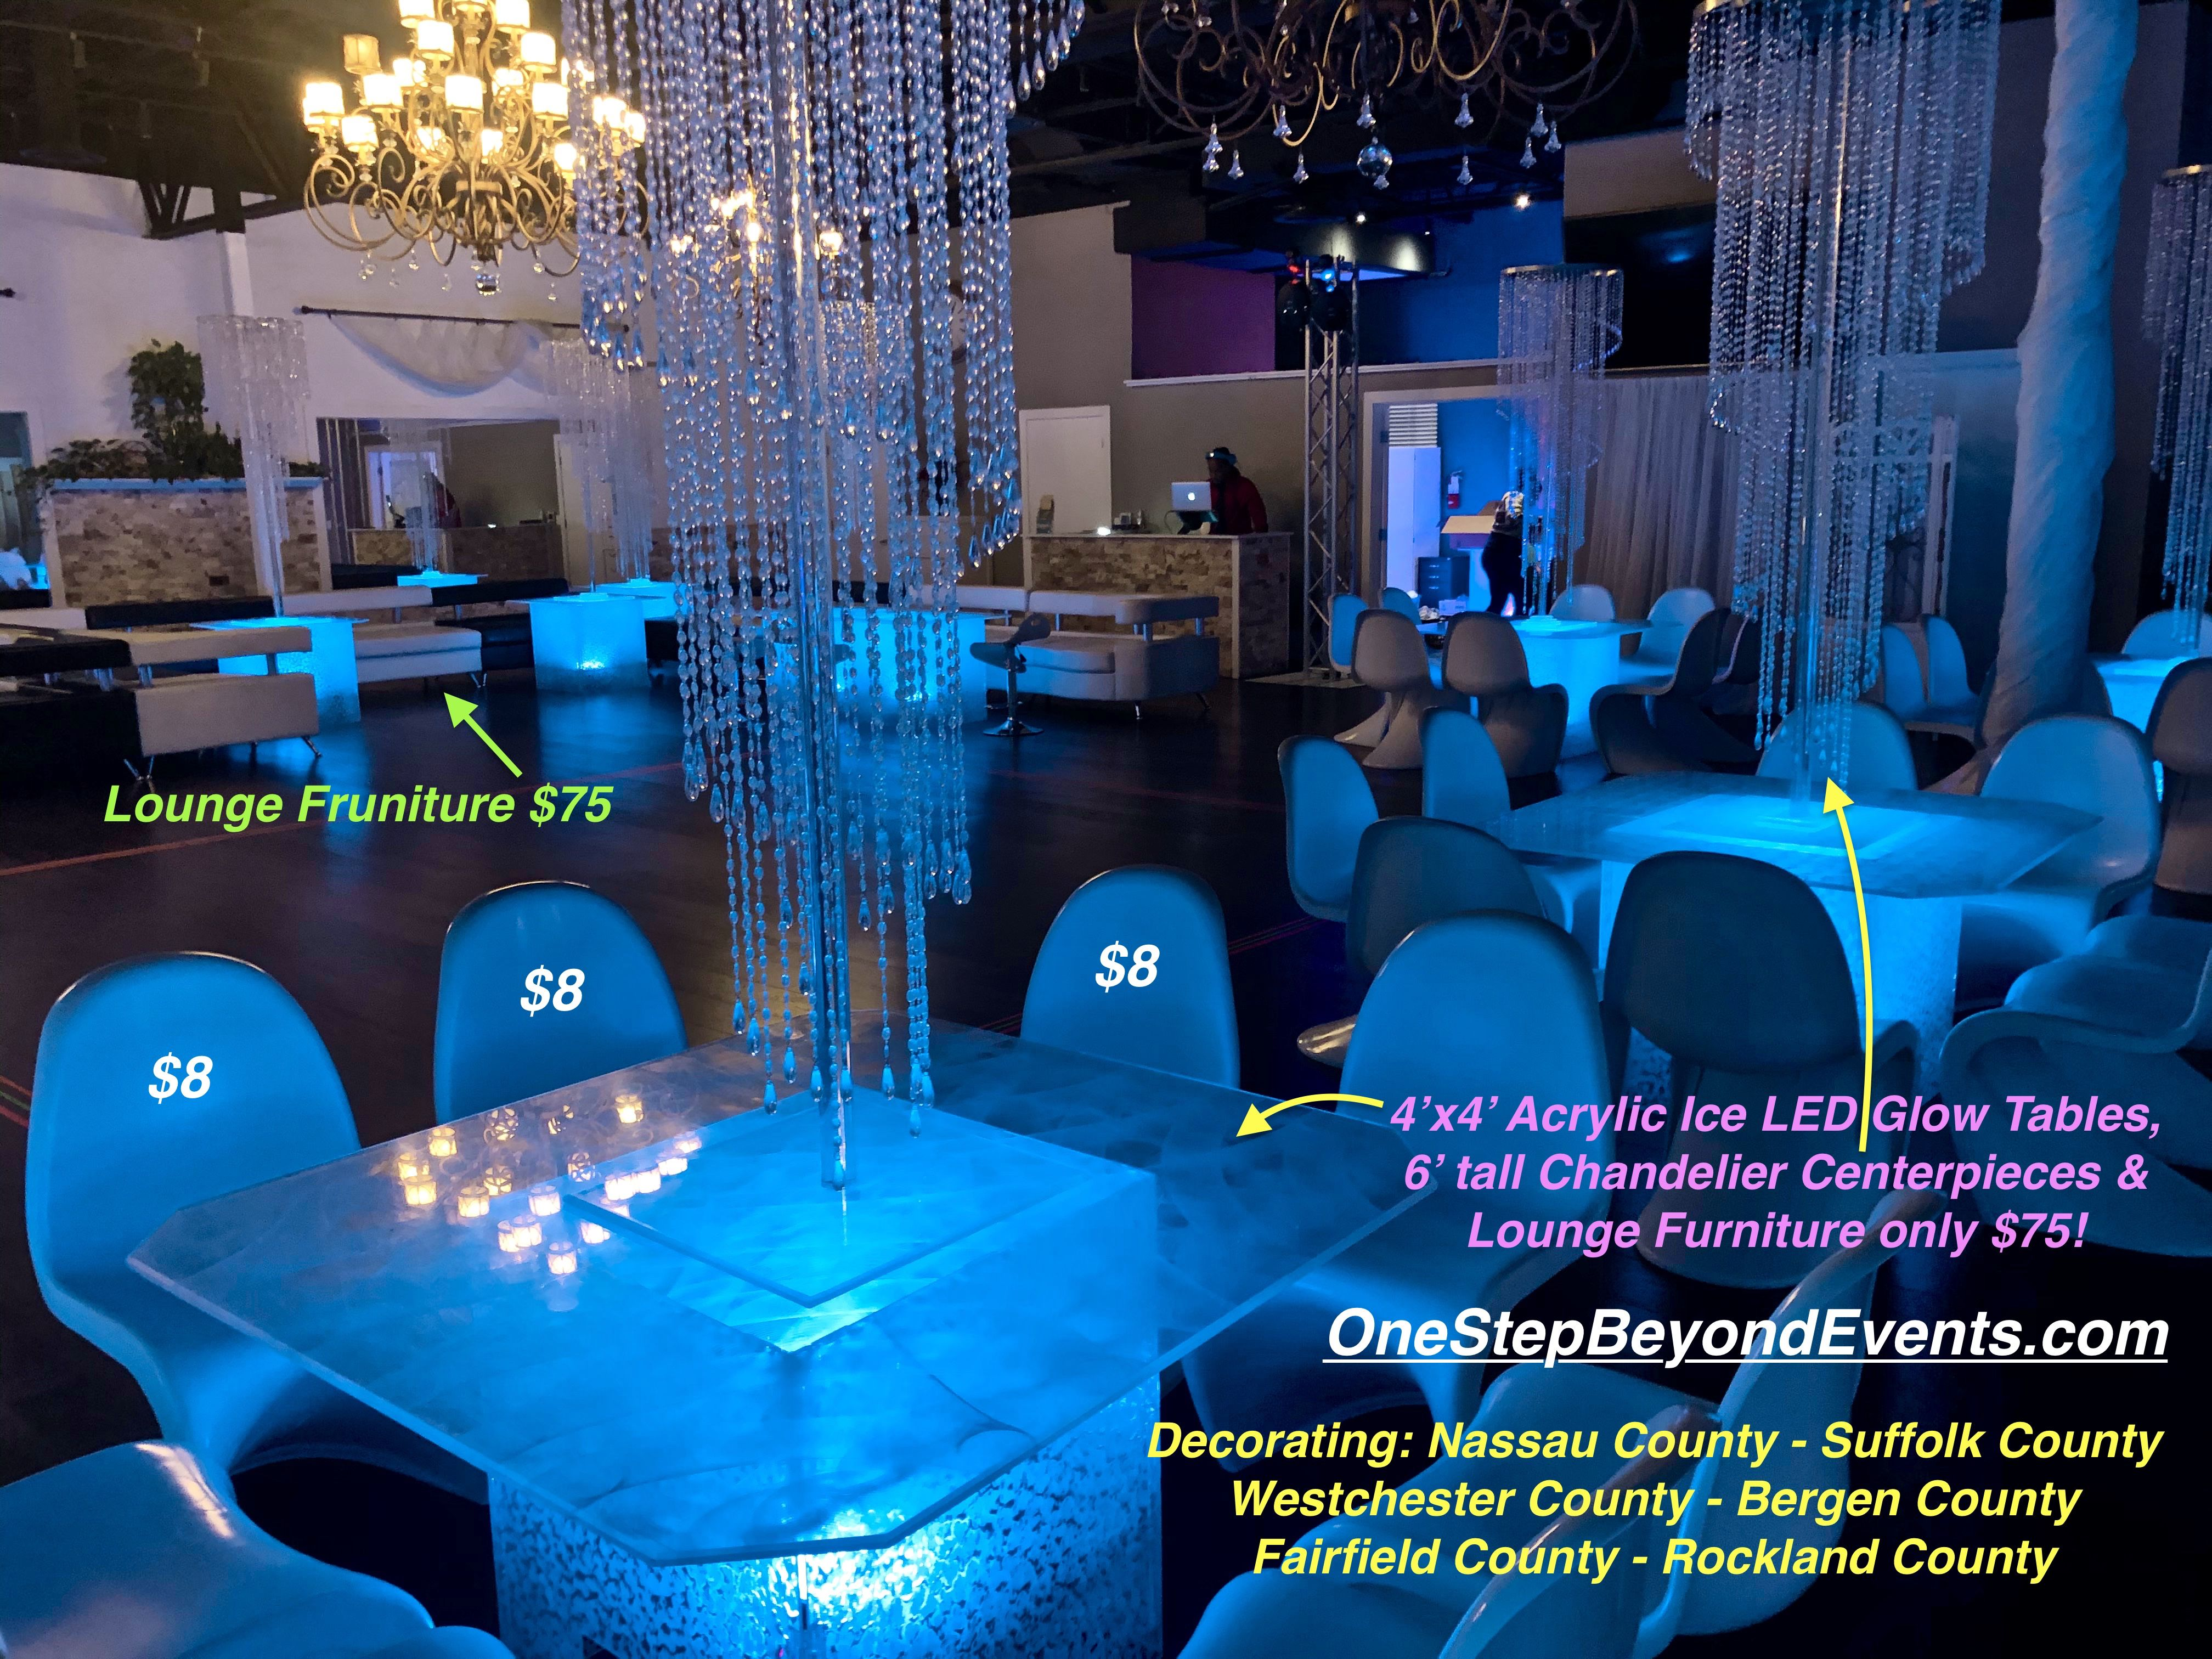 Pin On Acrylic Ice Led Cocktail Table Rentals Orlando And Beyond